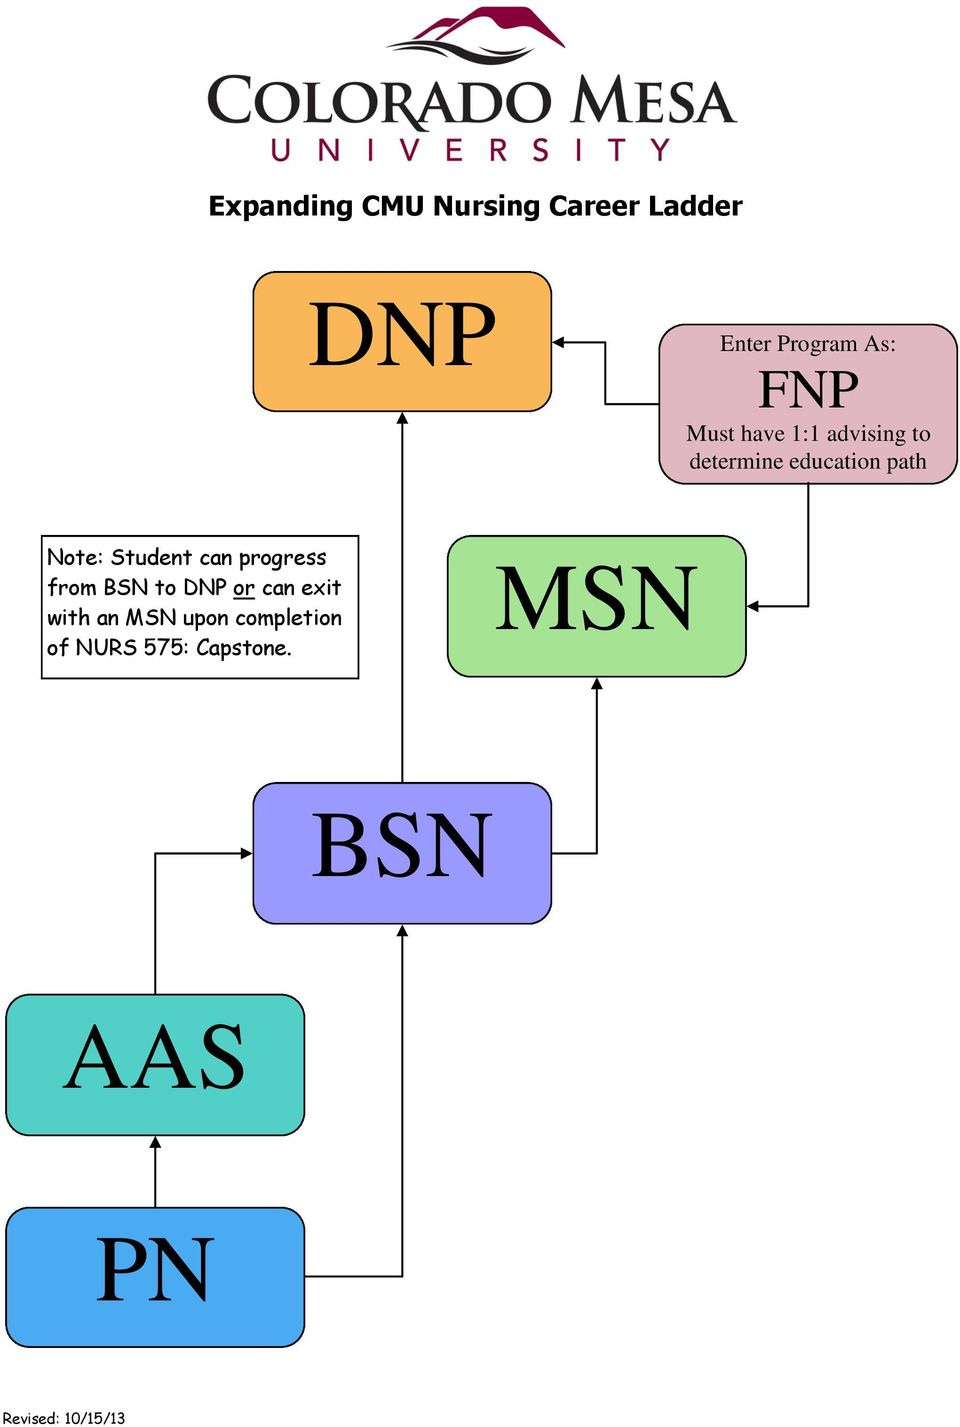 Note: Student can progress from BSN to DNP or can exit